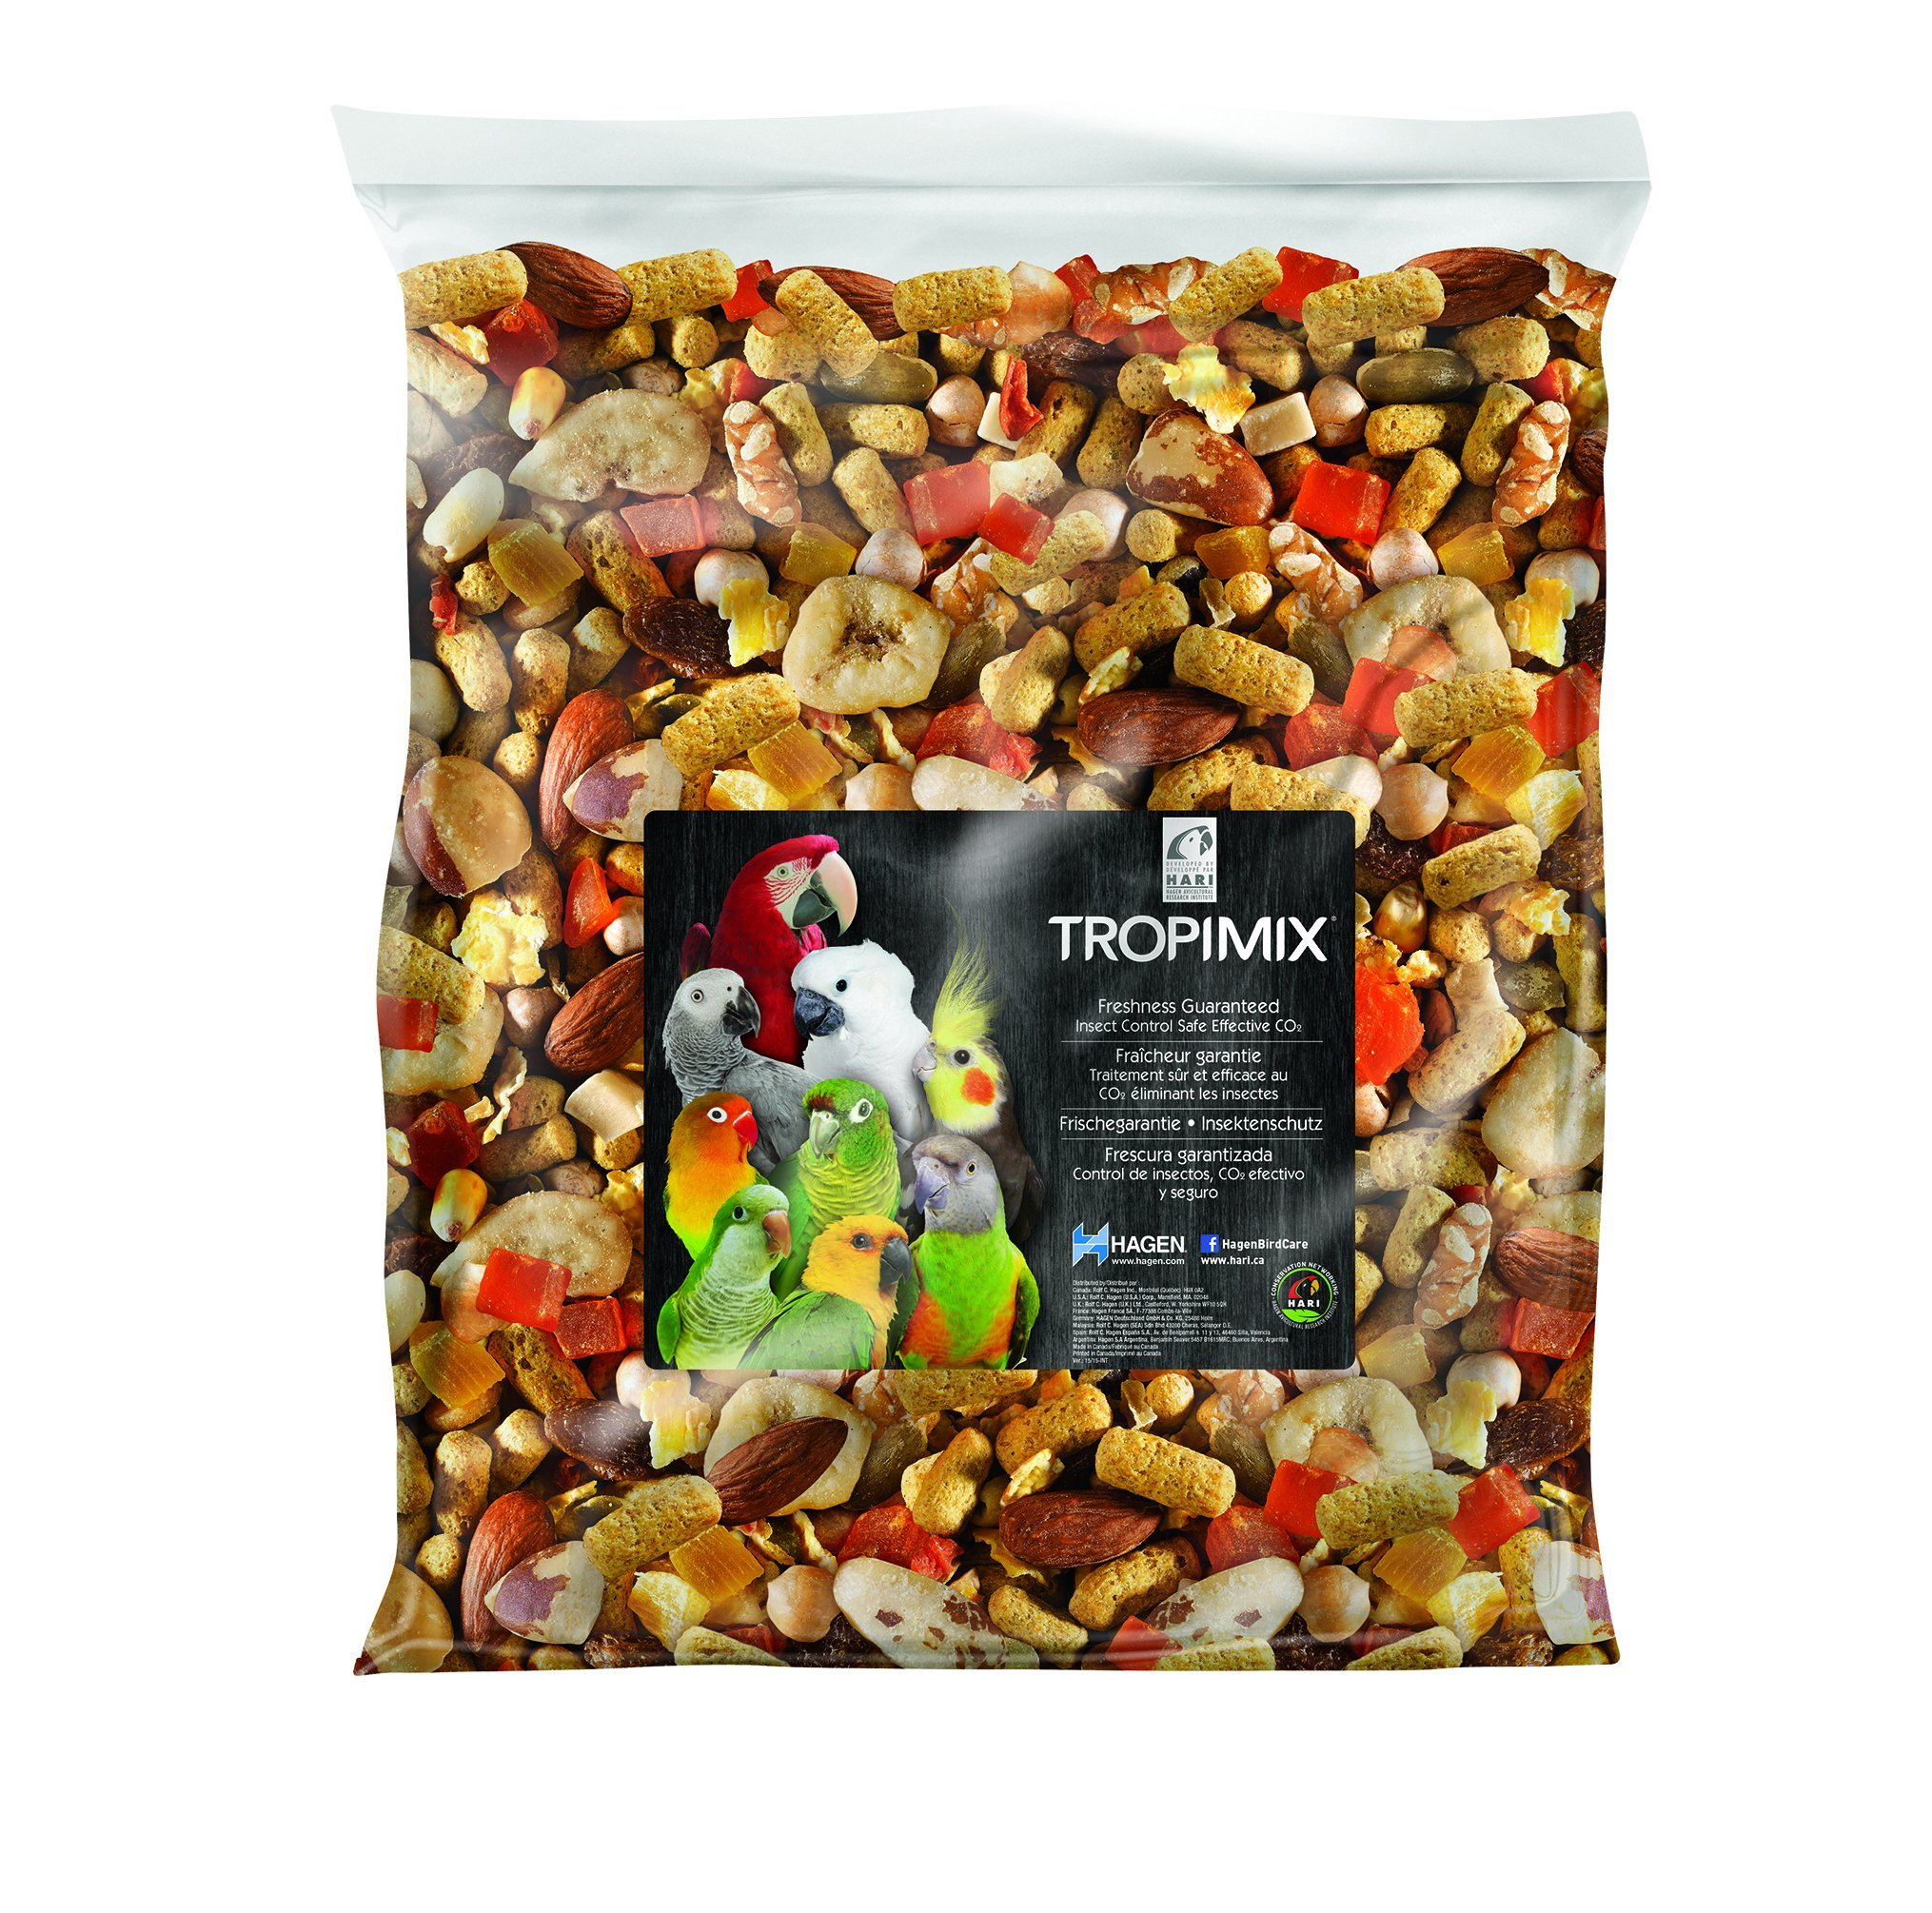 Tropimix Large Parrot Food Mix, Premium Blend of human-Grade Grains, Legumes, Nuts, Fruits & Vegetables, 20 lb Bag by Hari